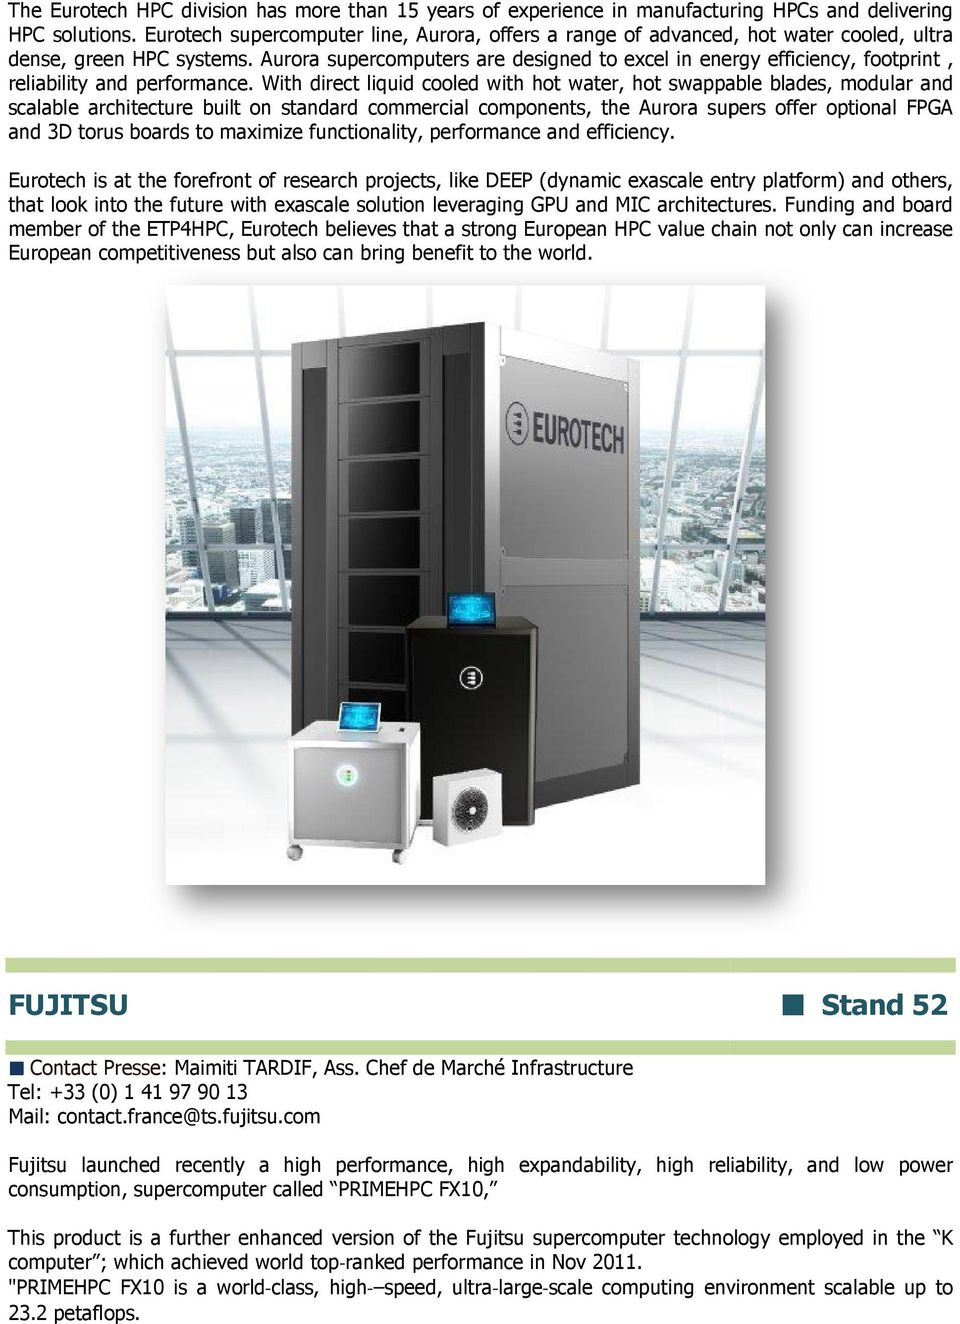 Aurora supercomputers are designed to excel in energy efficiency, footprint, reliability and performance.